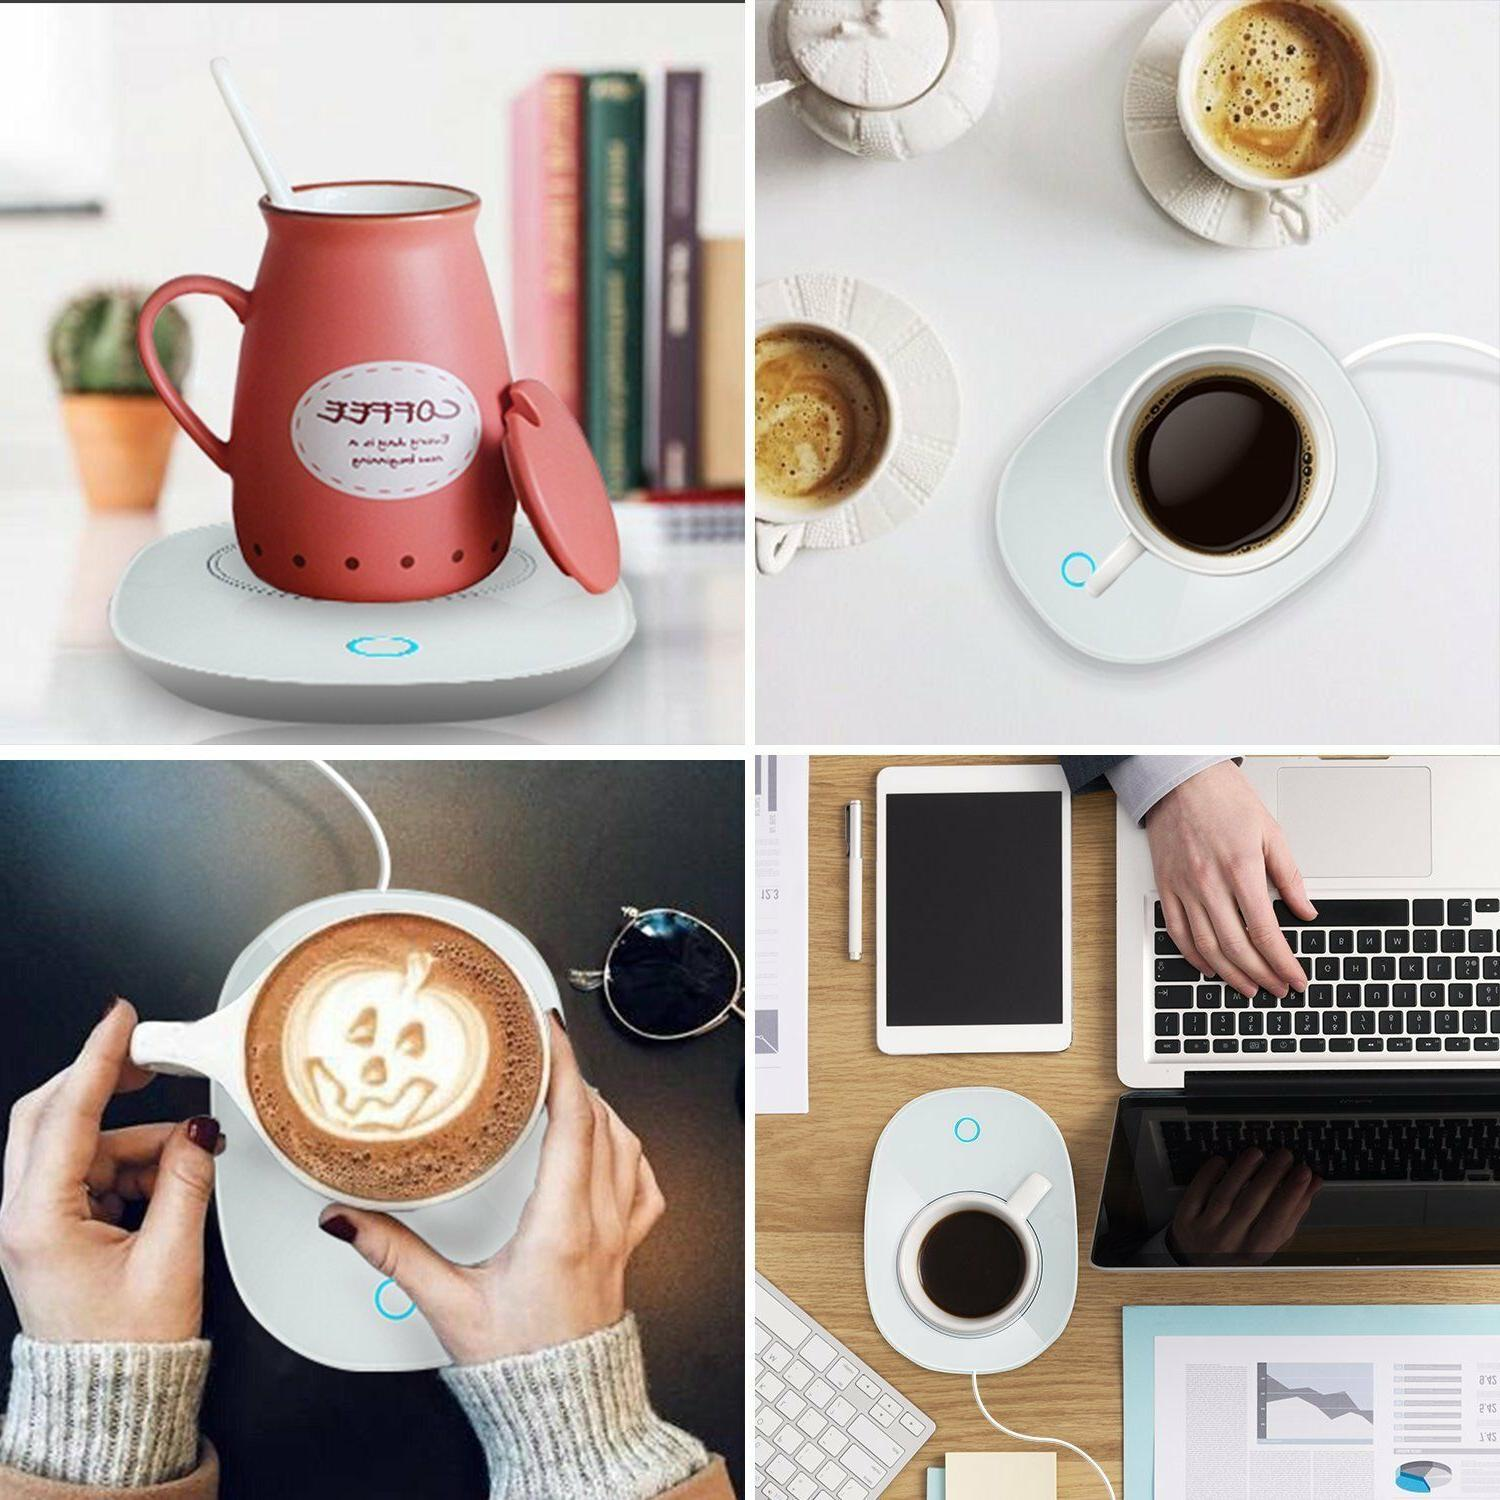 Automatic Thermostatic mug Warmer for Use Up to 55℃